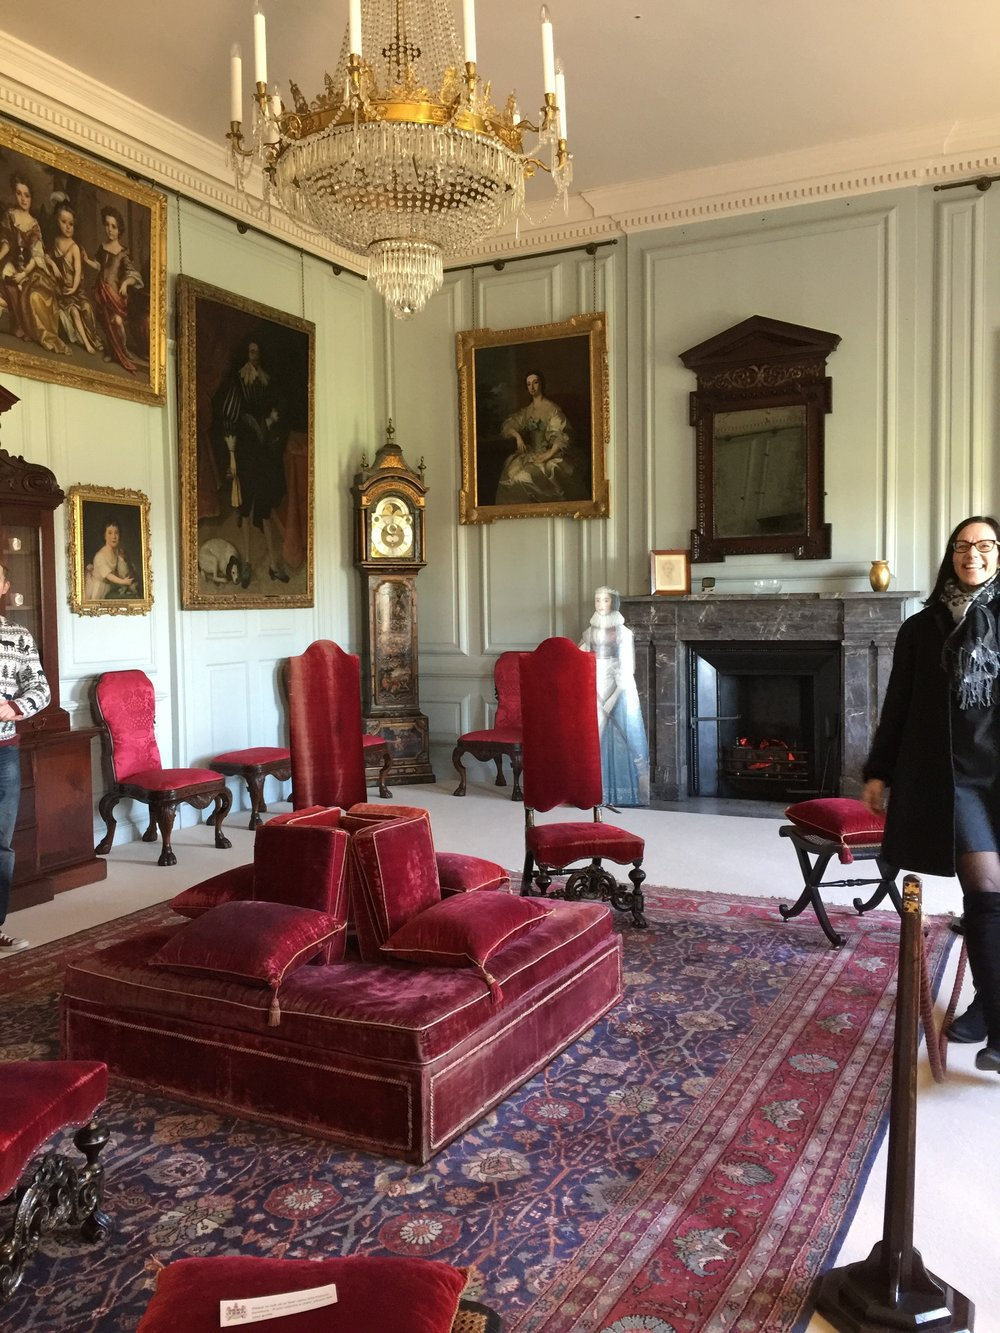 queen victoria visit stoneleigh abbey